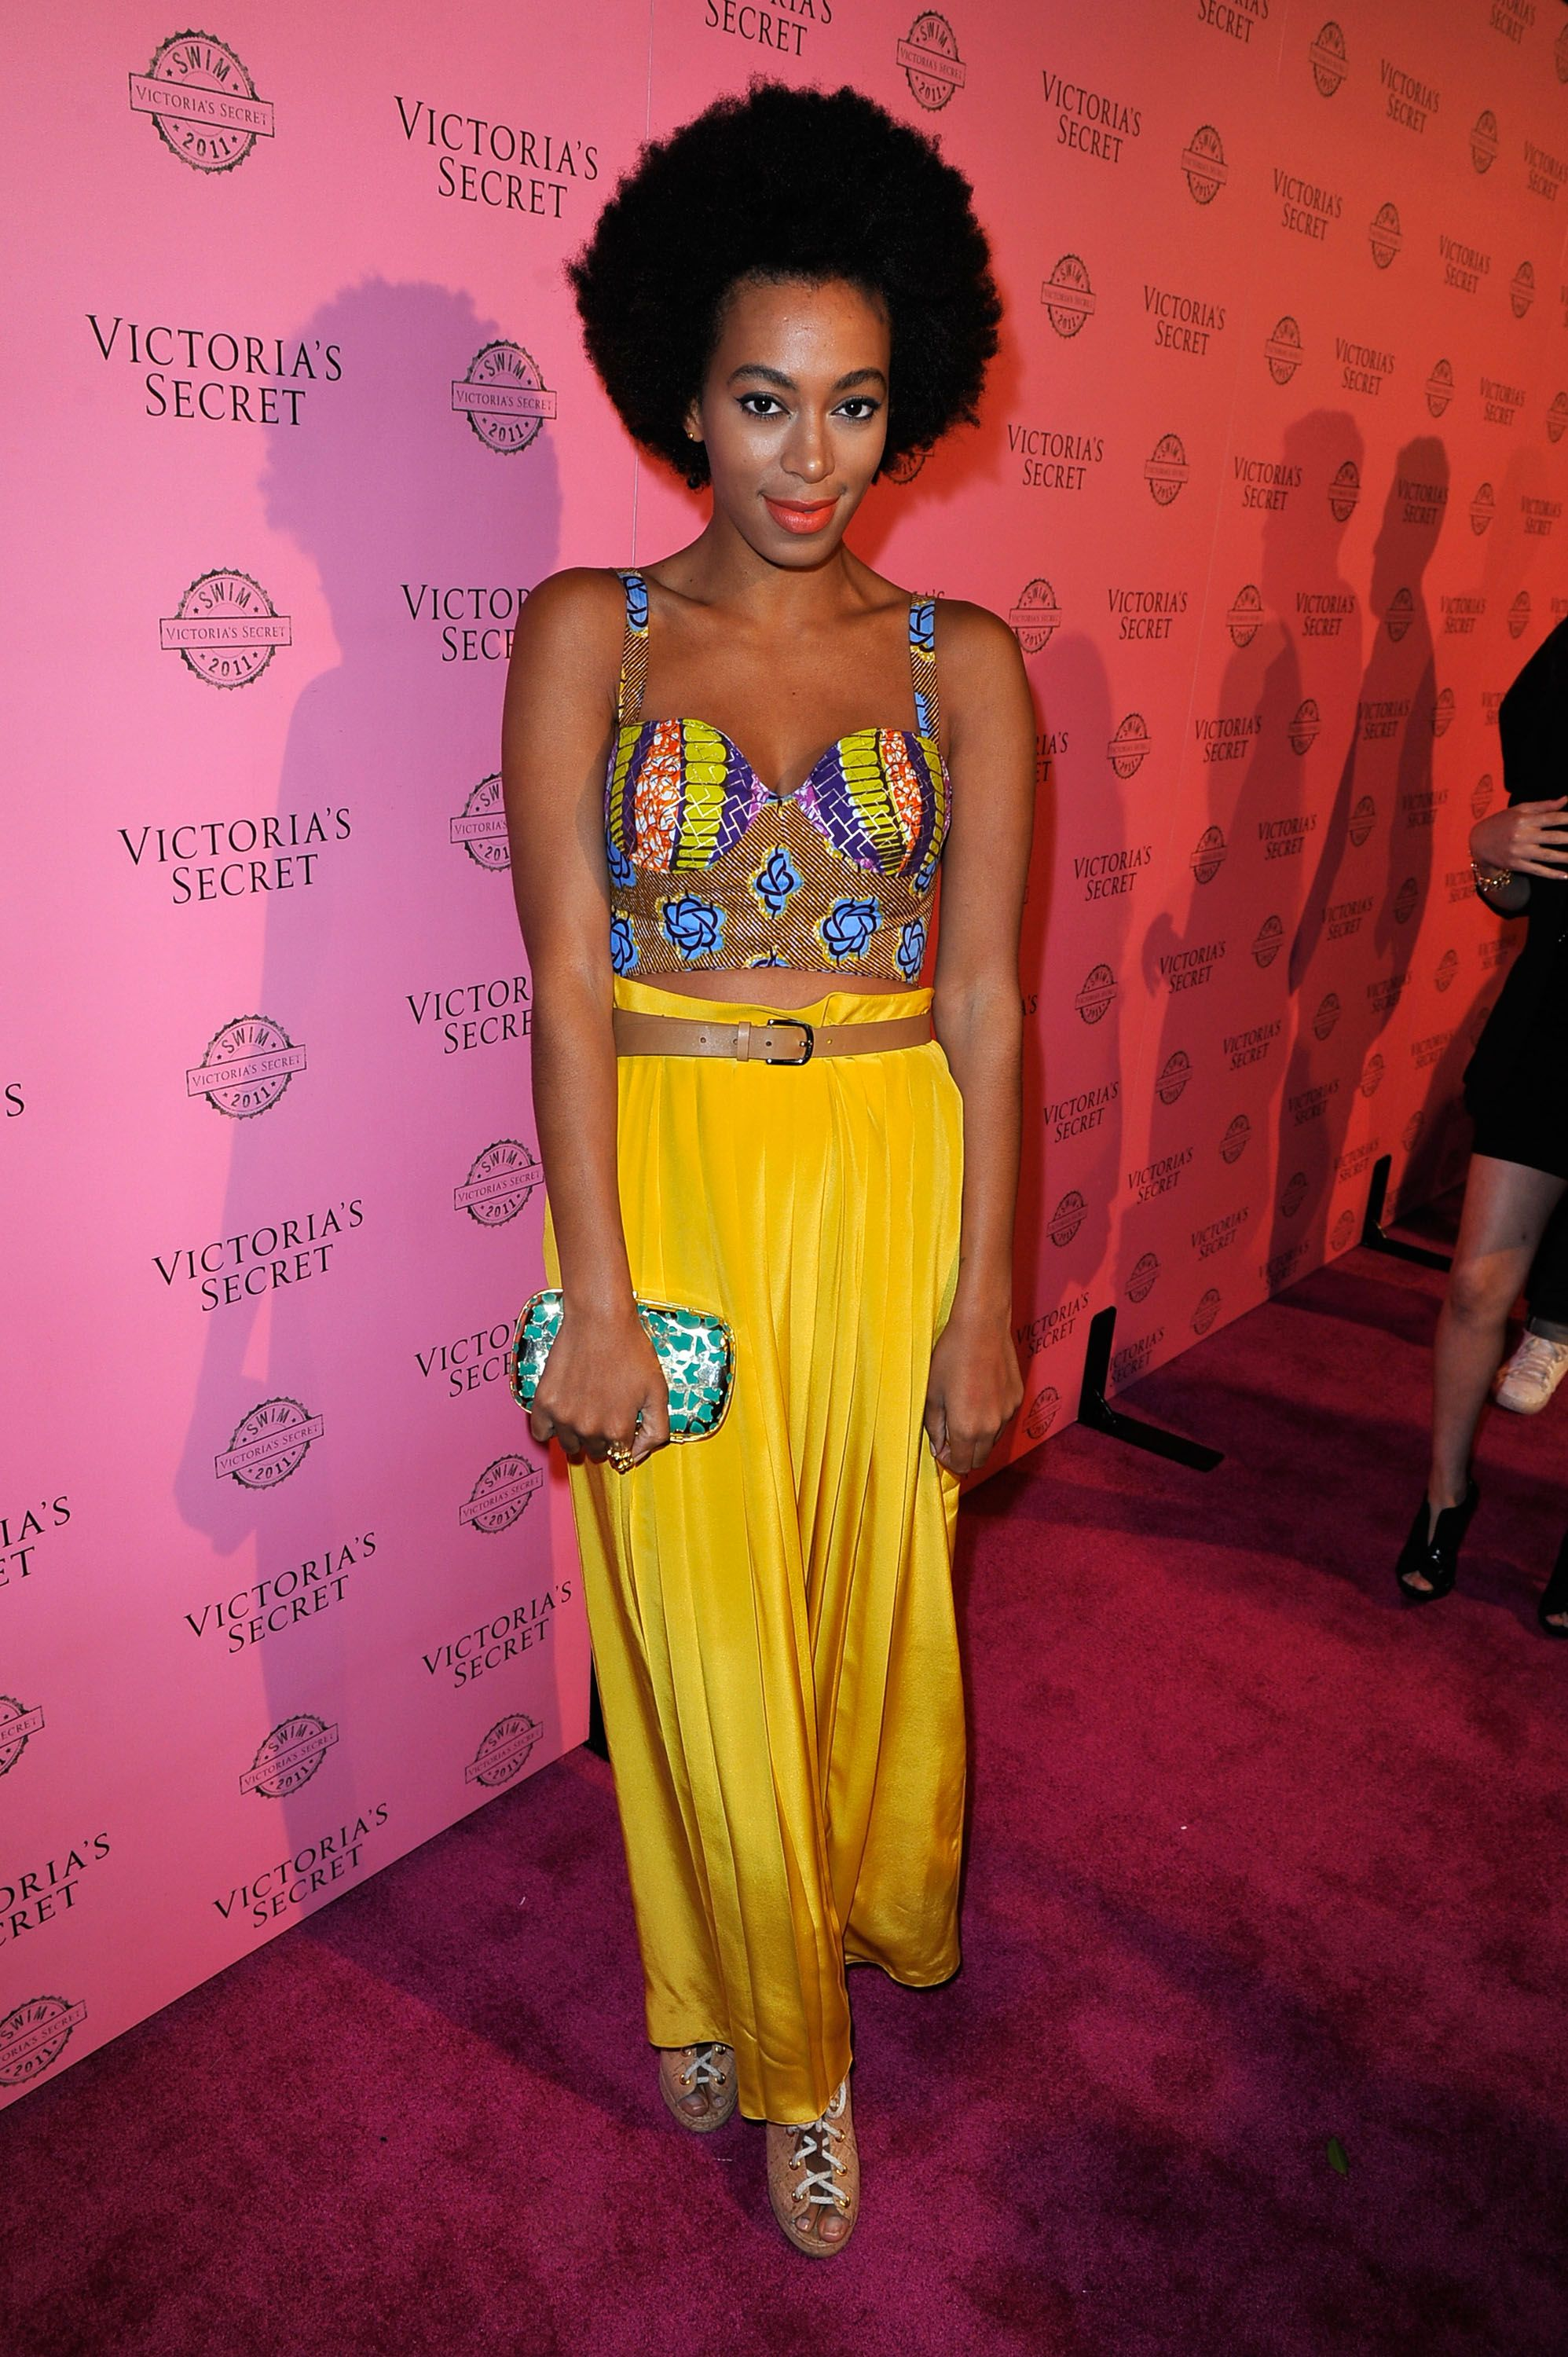 Yellow again! Solange wore a tribal crop top and high-waisted trousers for a Victoria's Secret event in Los Angeles.